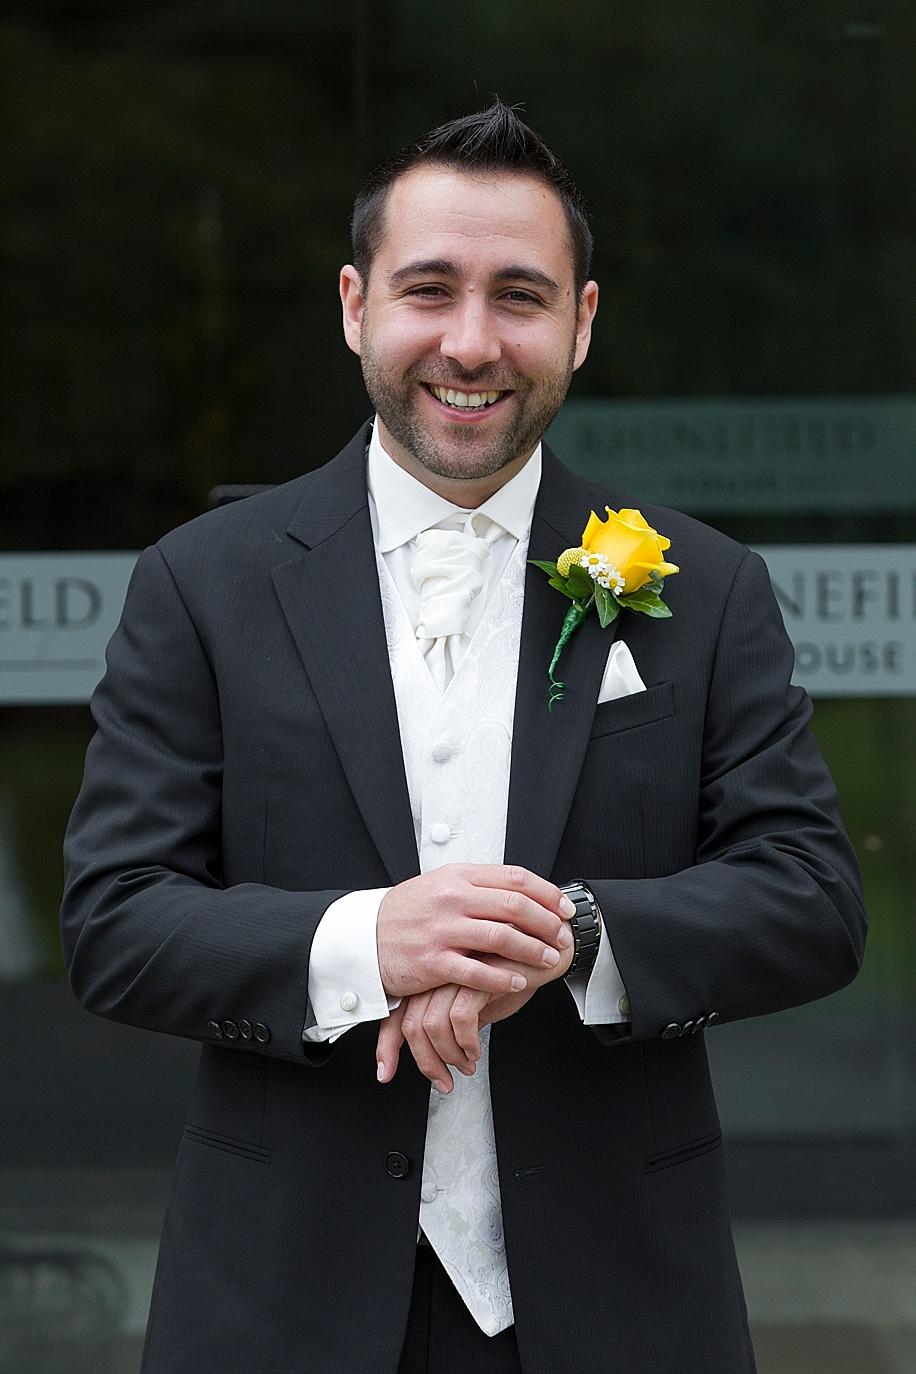 Rhinefield House wedding photography by Martin Bell Photography - Groom Portraits